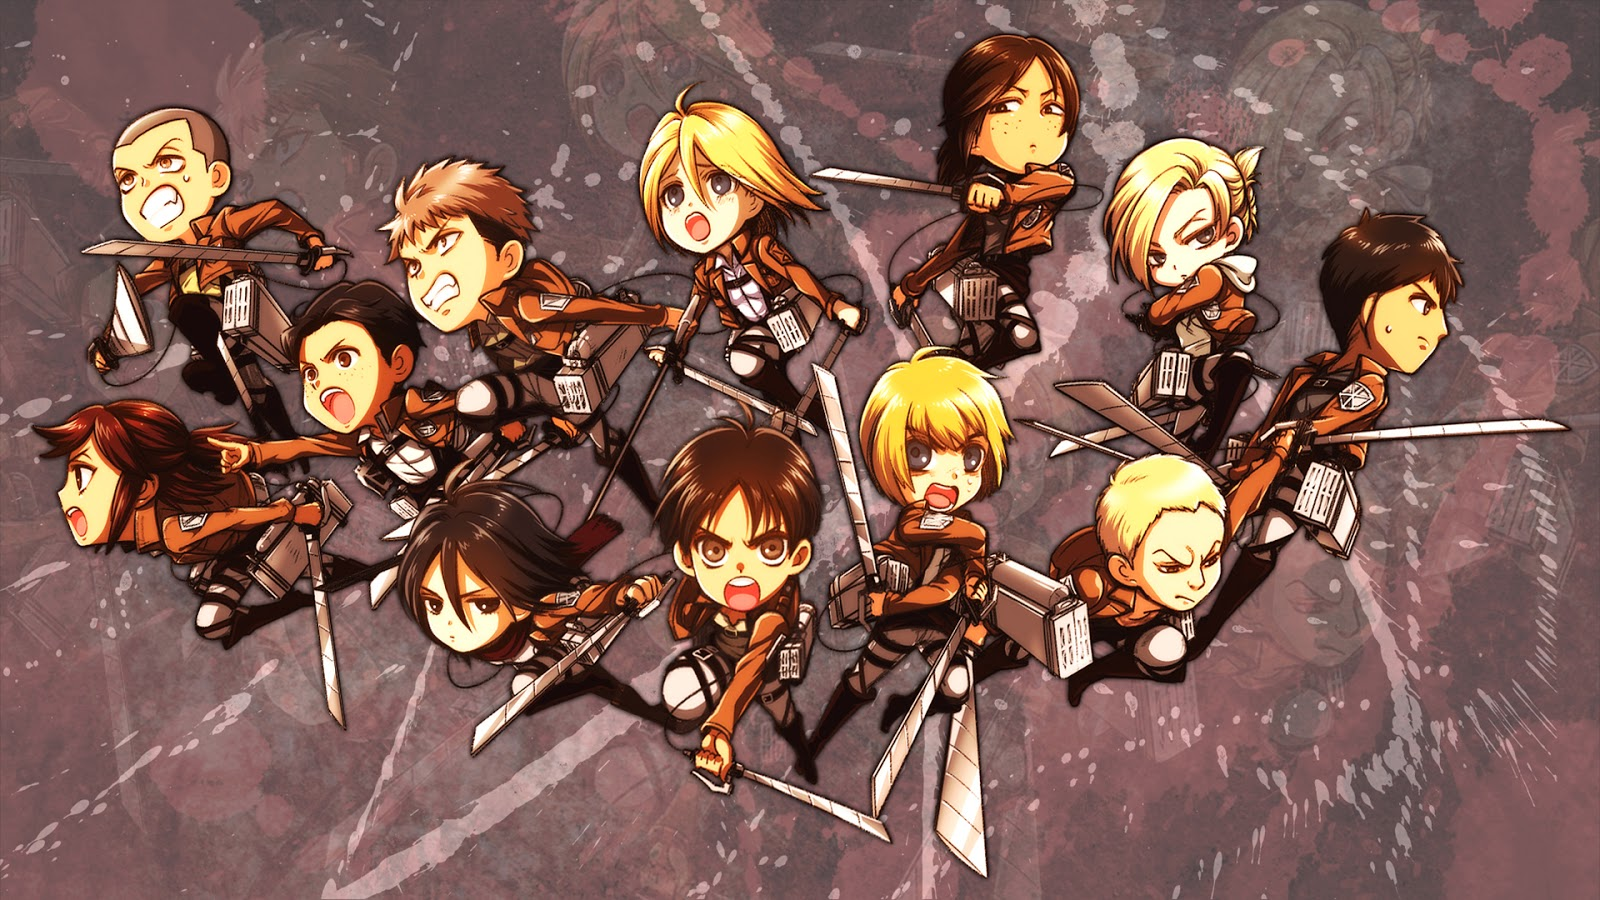 Free Download Sasha Braus Attack On Titan Shingeki No Kyojin Anime